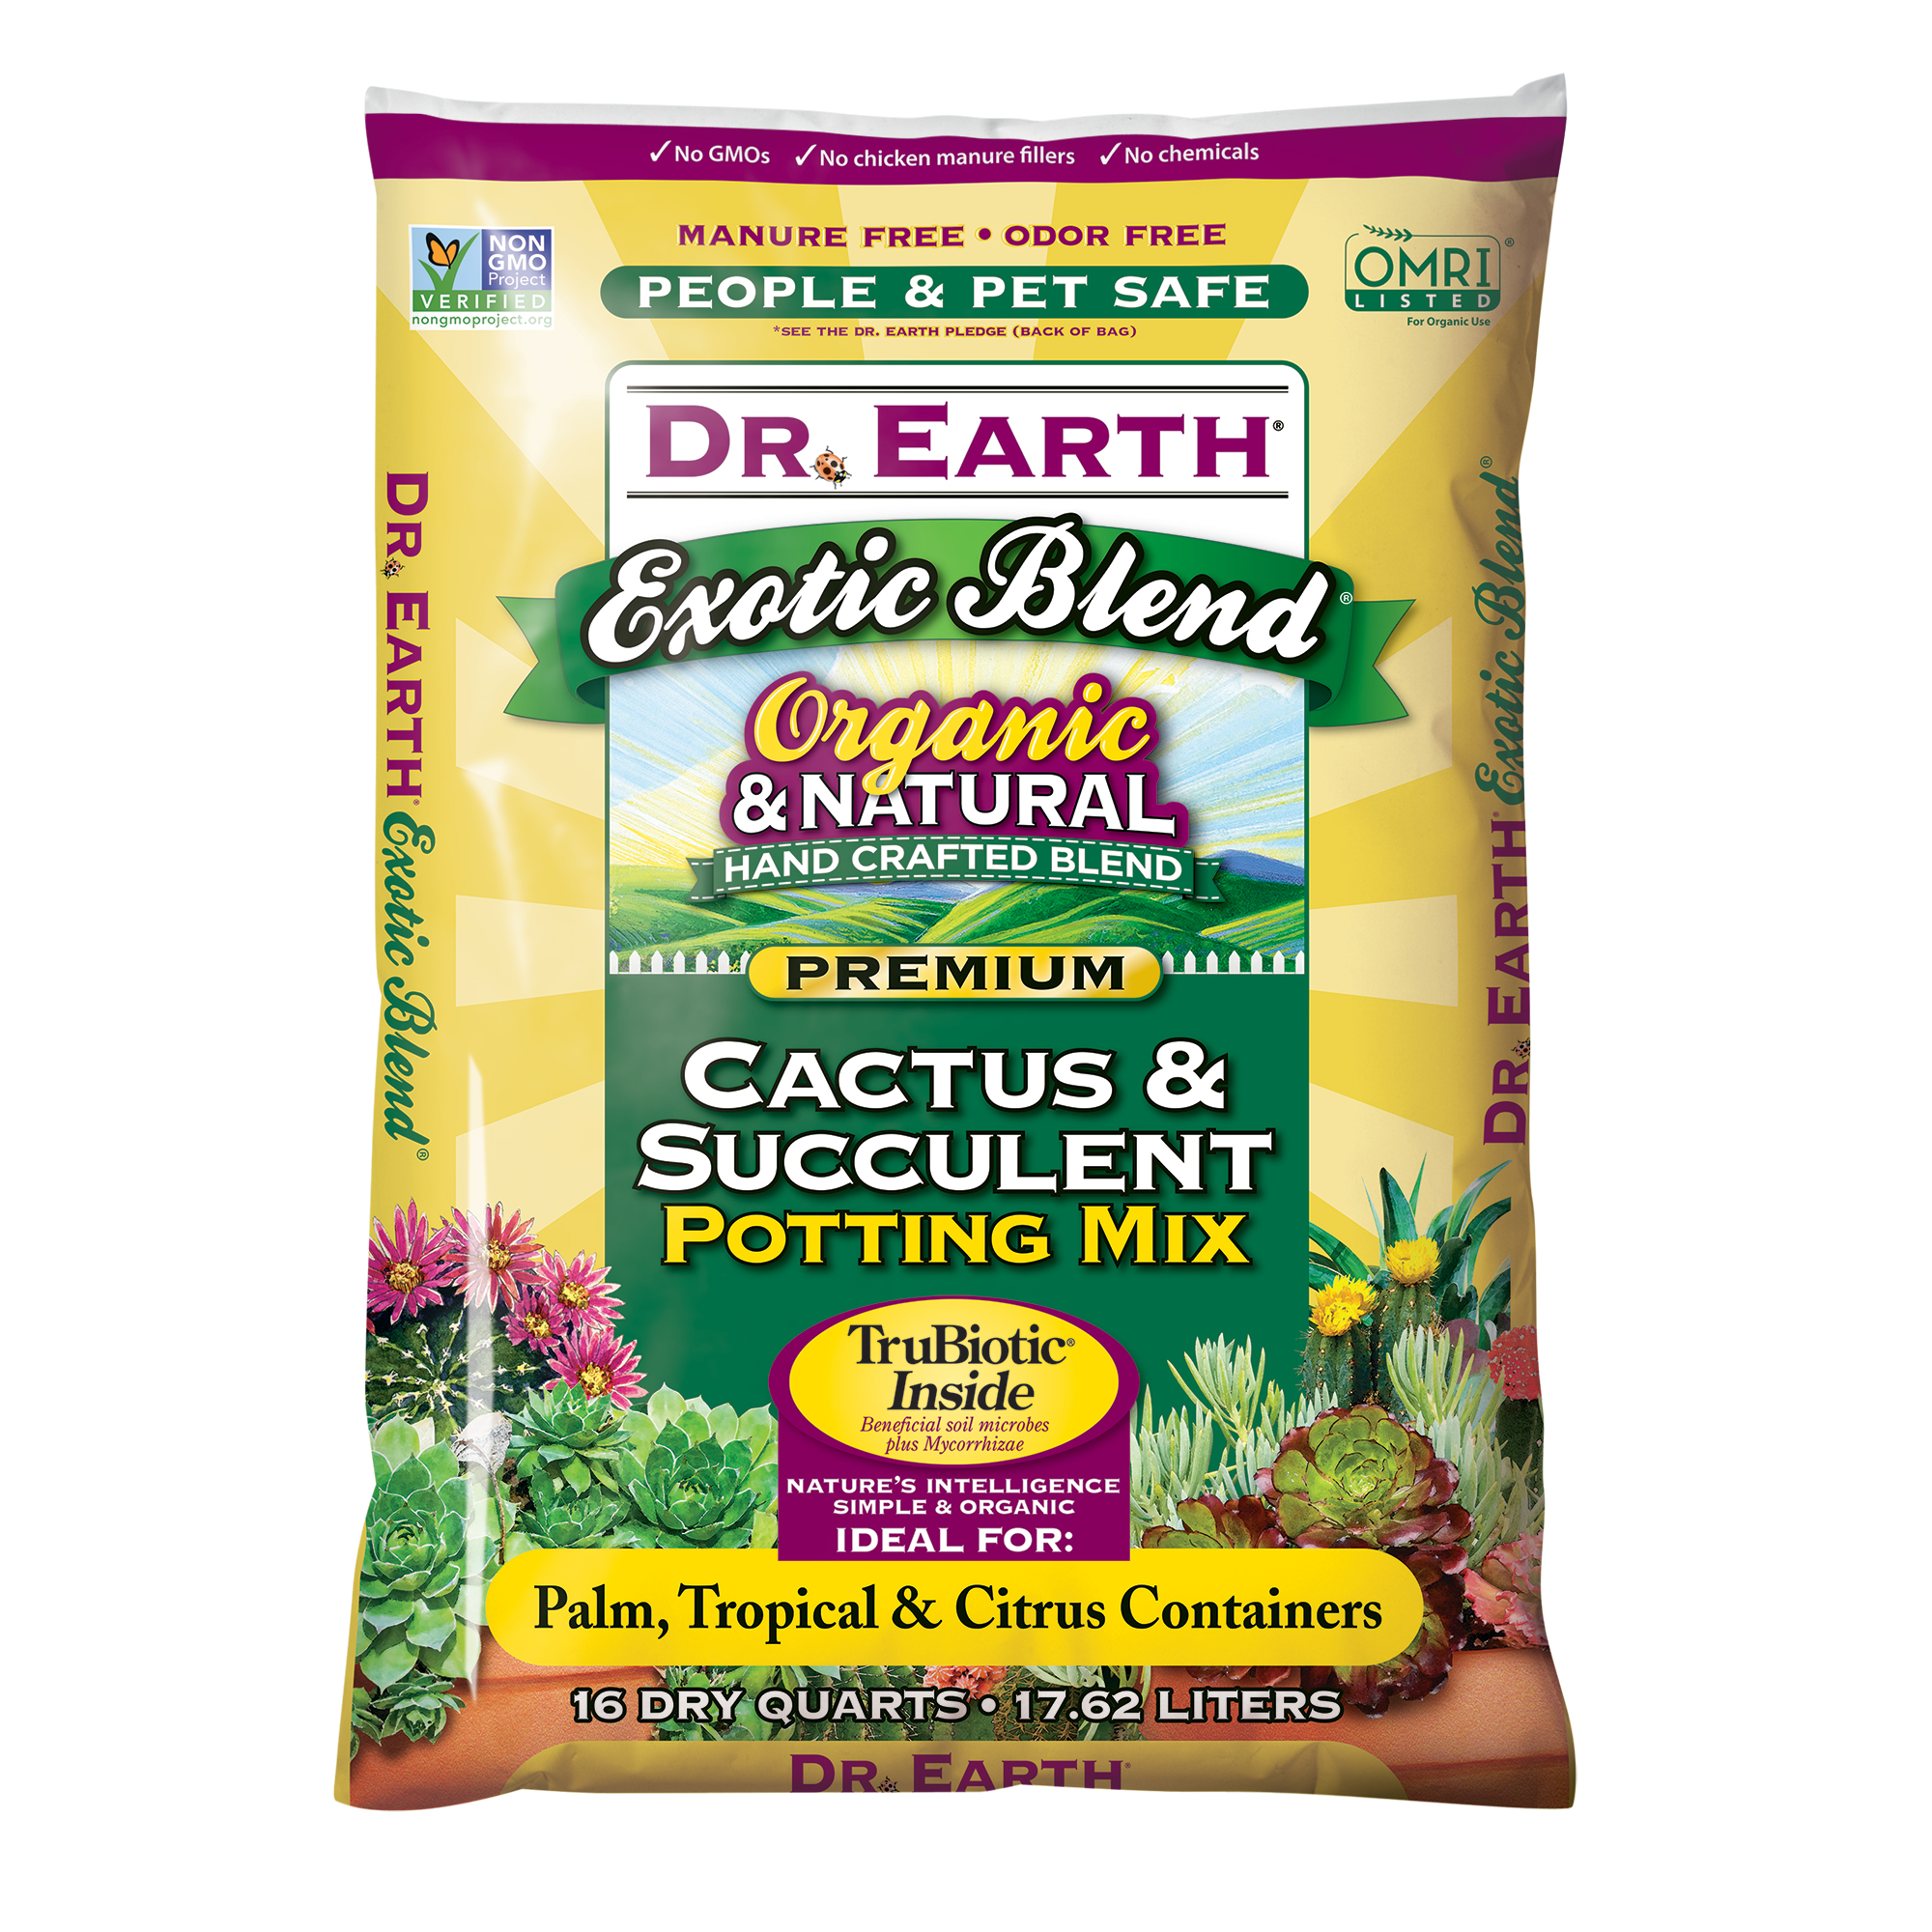 EXOTIC BLEND® CACTUS & SUCCULENT POTTING MIX 16qt